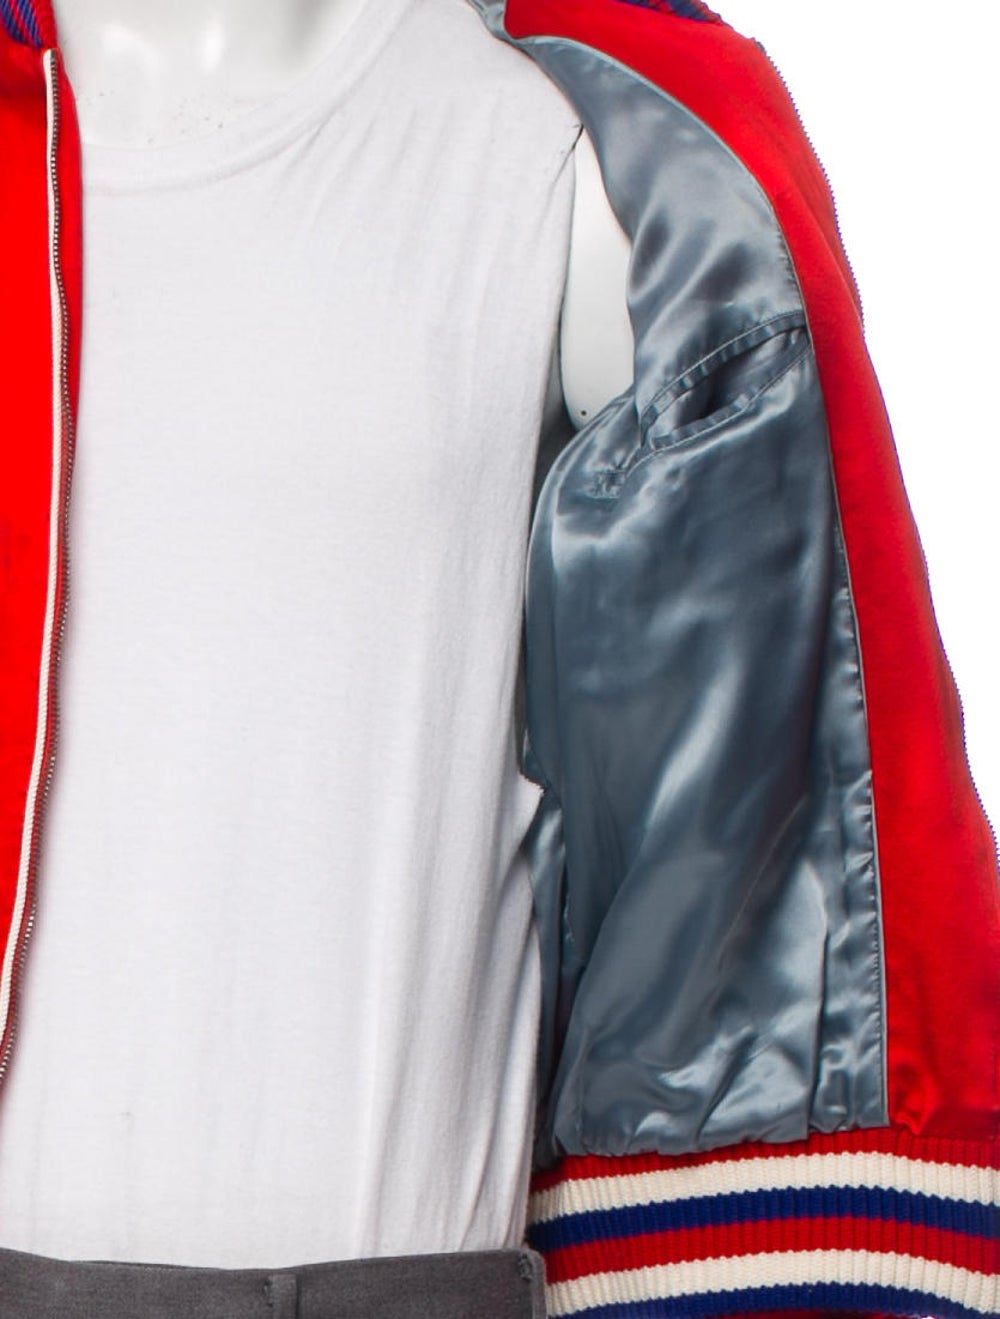 Gucci Silk Donald Duck Bomber Jacket red - image 4